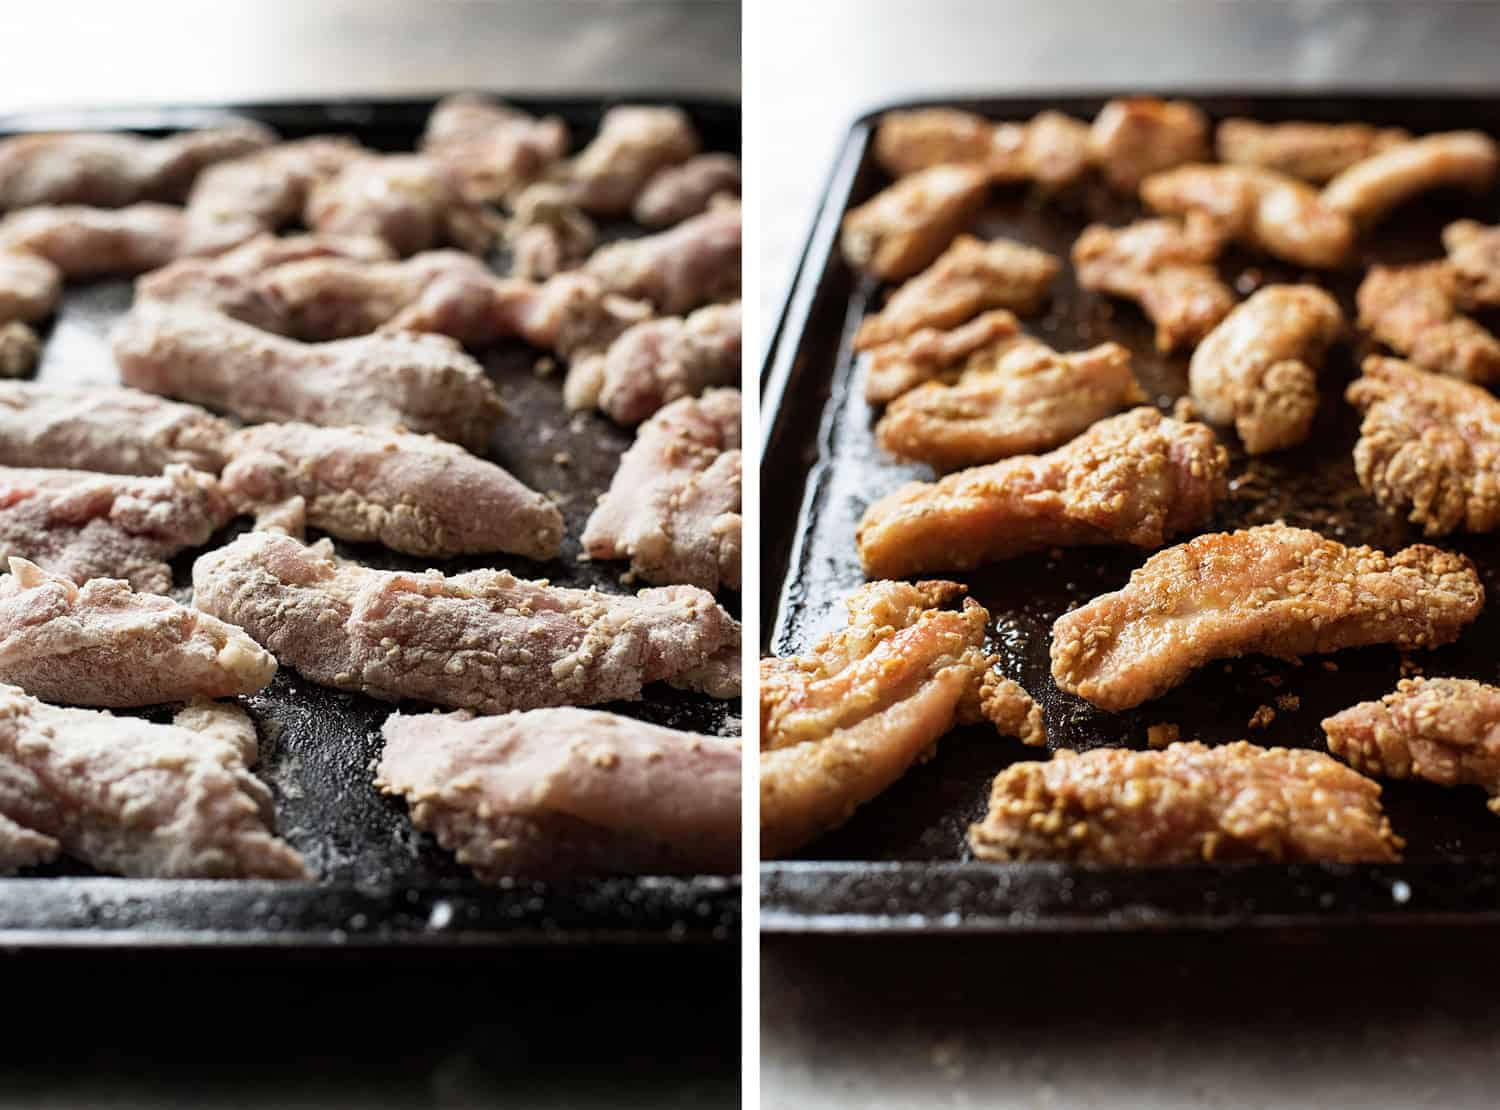 Dusted Chinese Honey Sesame Chicken before and after baking